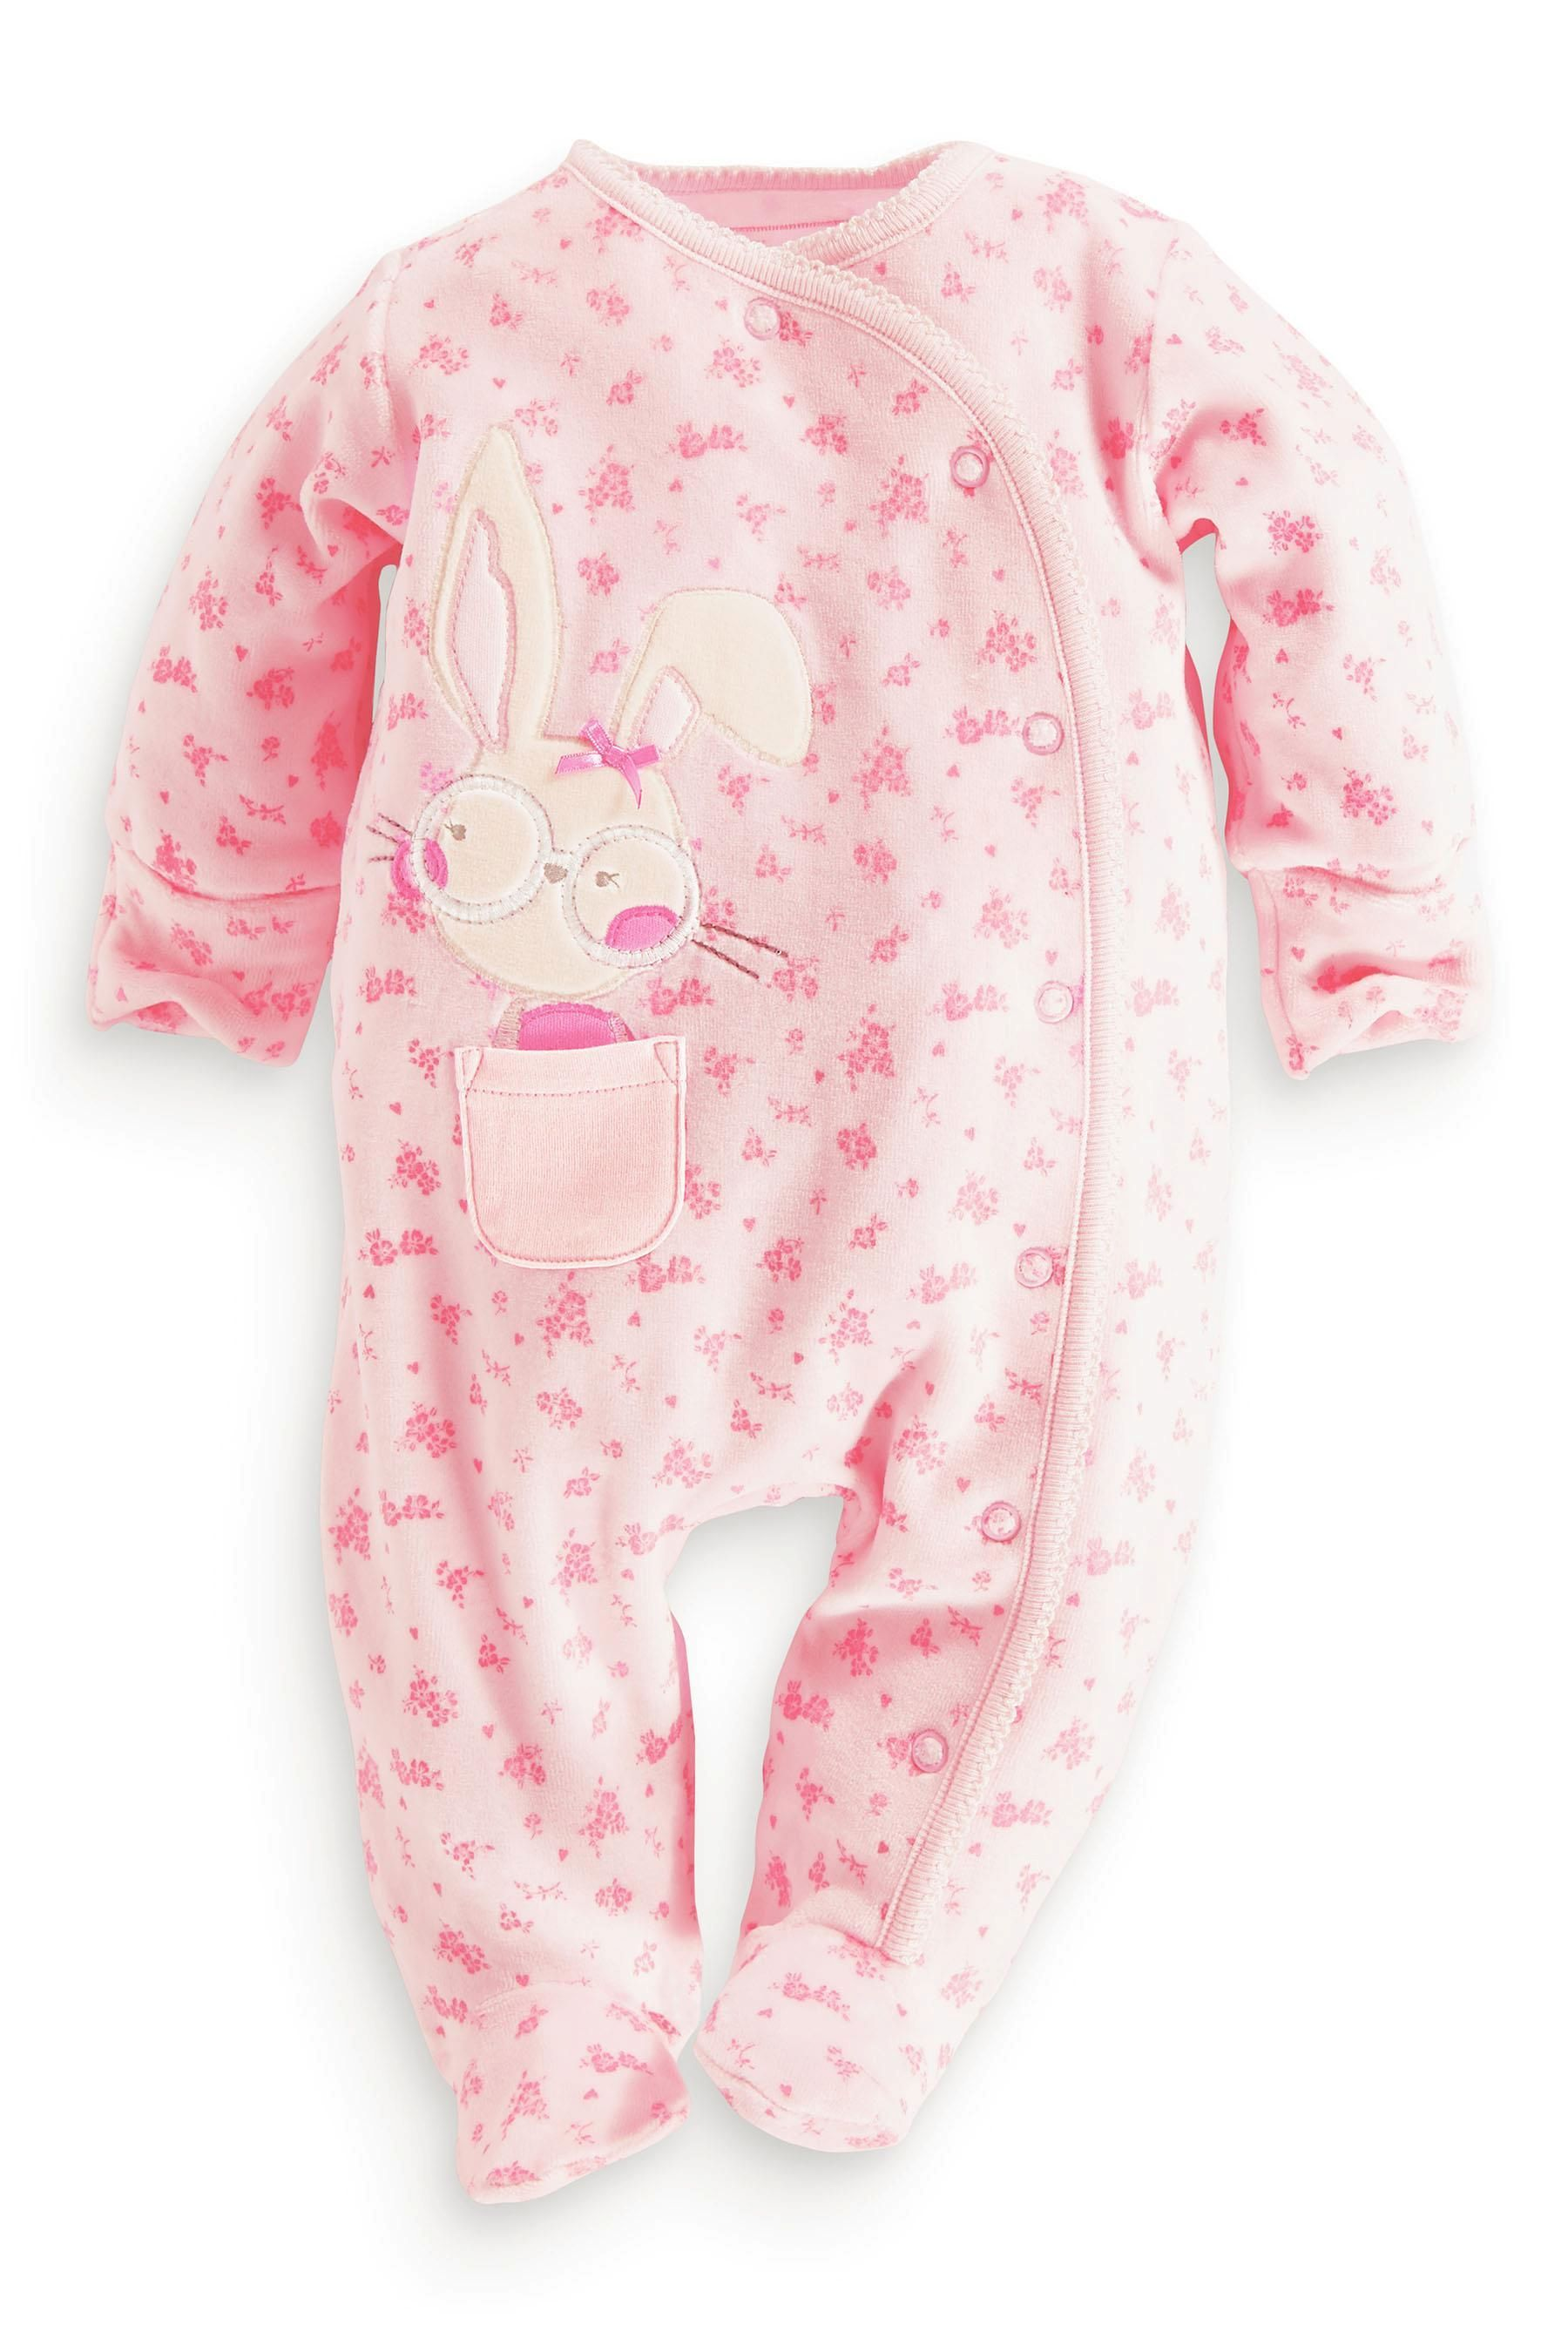 Buy Pink Bunny Velour Sleepsuit 0mths 18mths from the Next UK